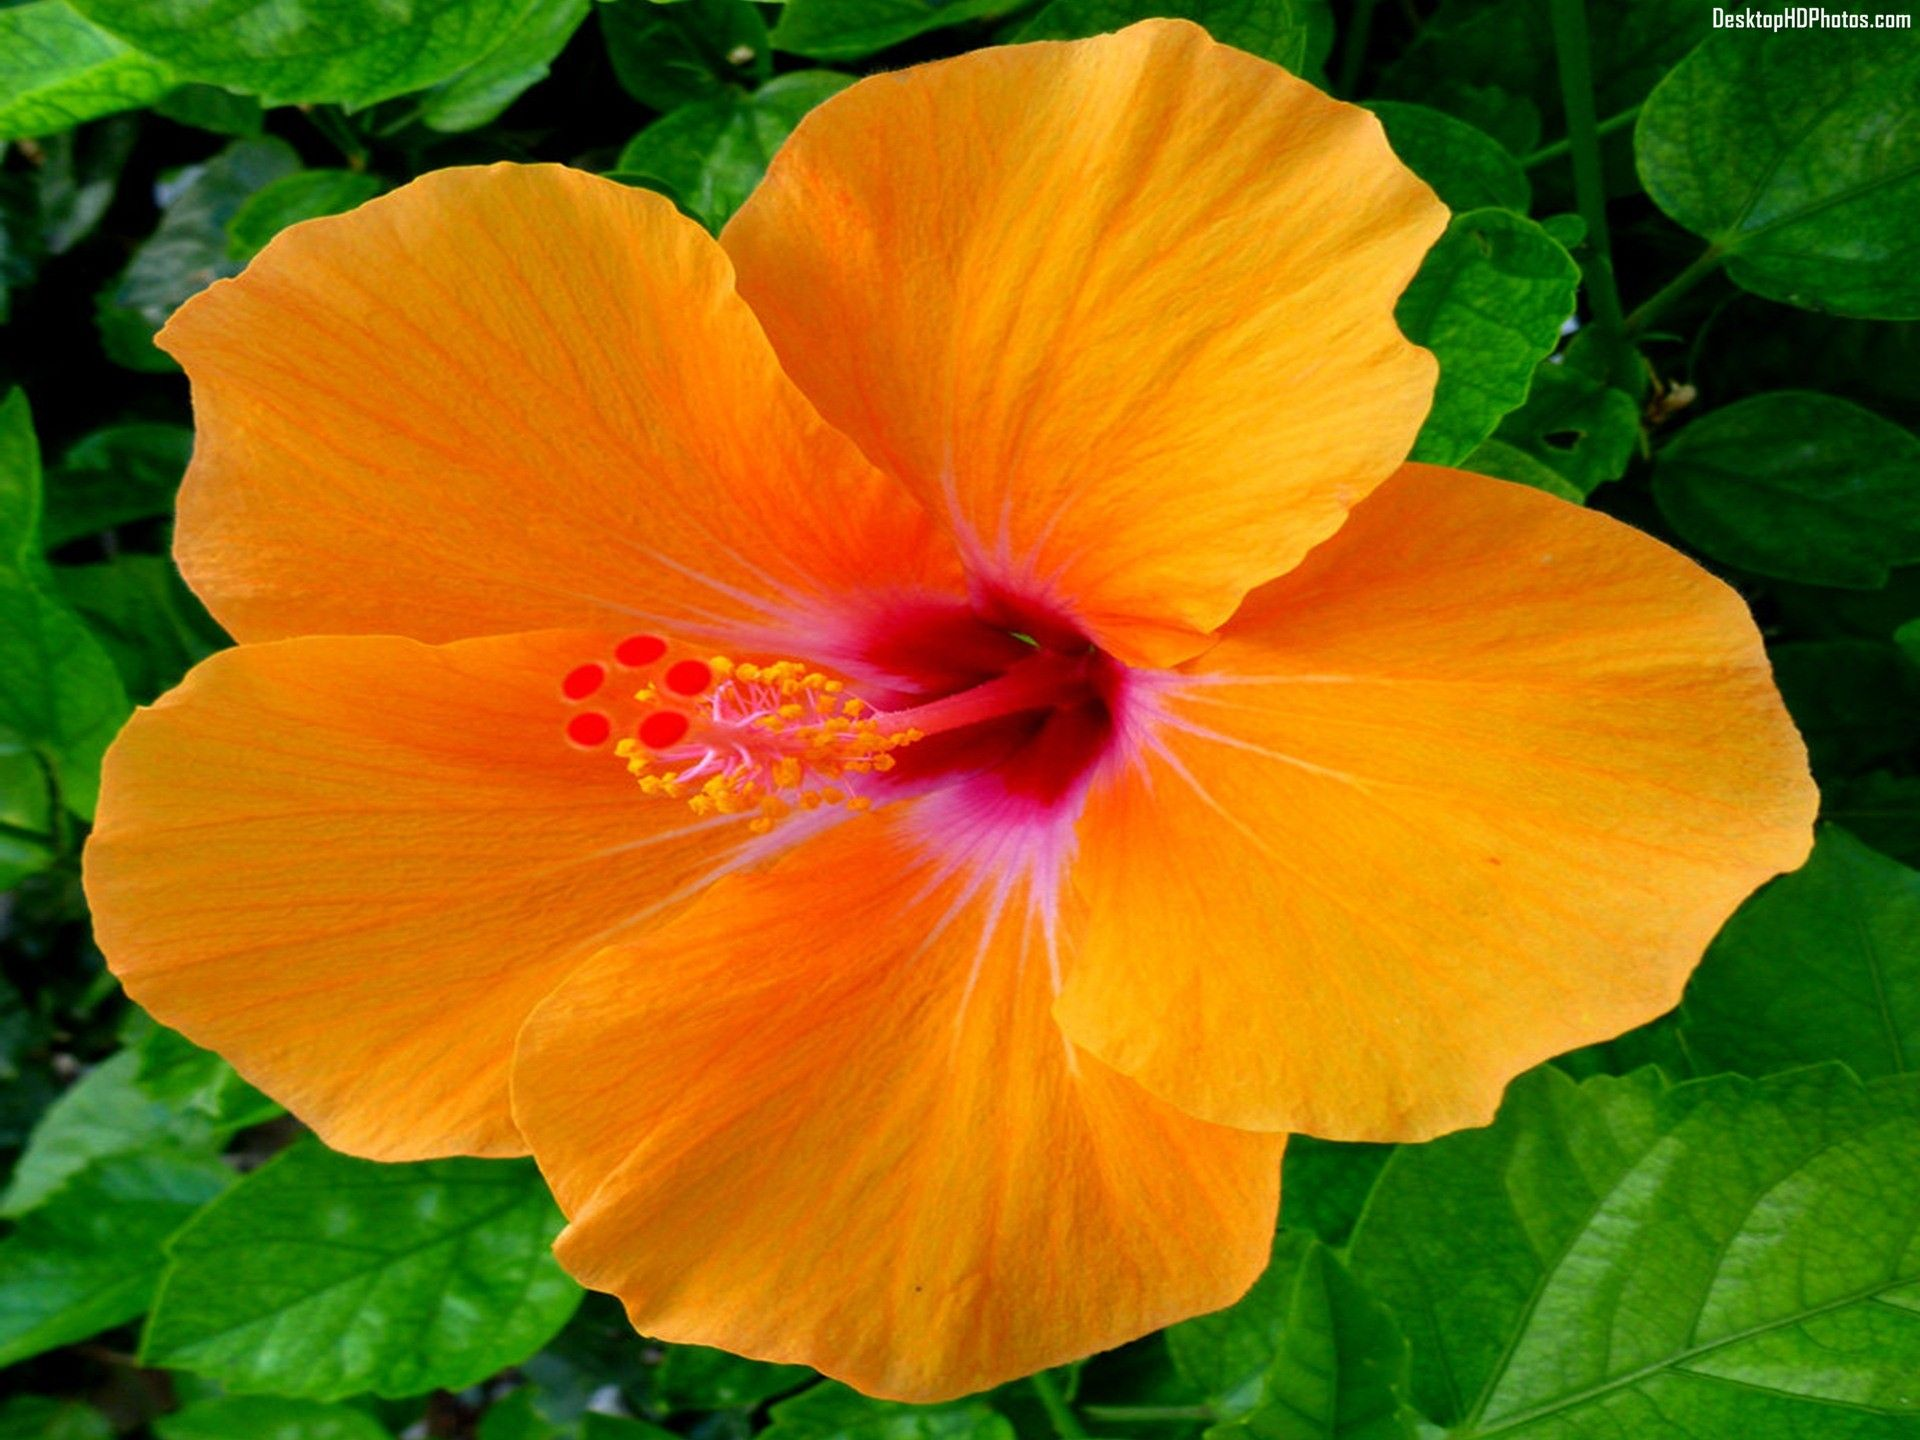 Hawaiian Hibiscus Orange Flower Desktop Hd Photos Hibiscus